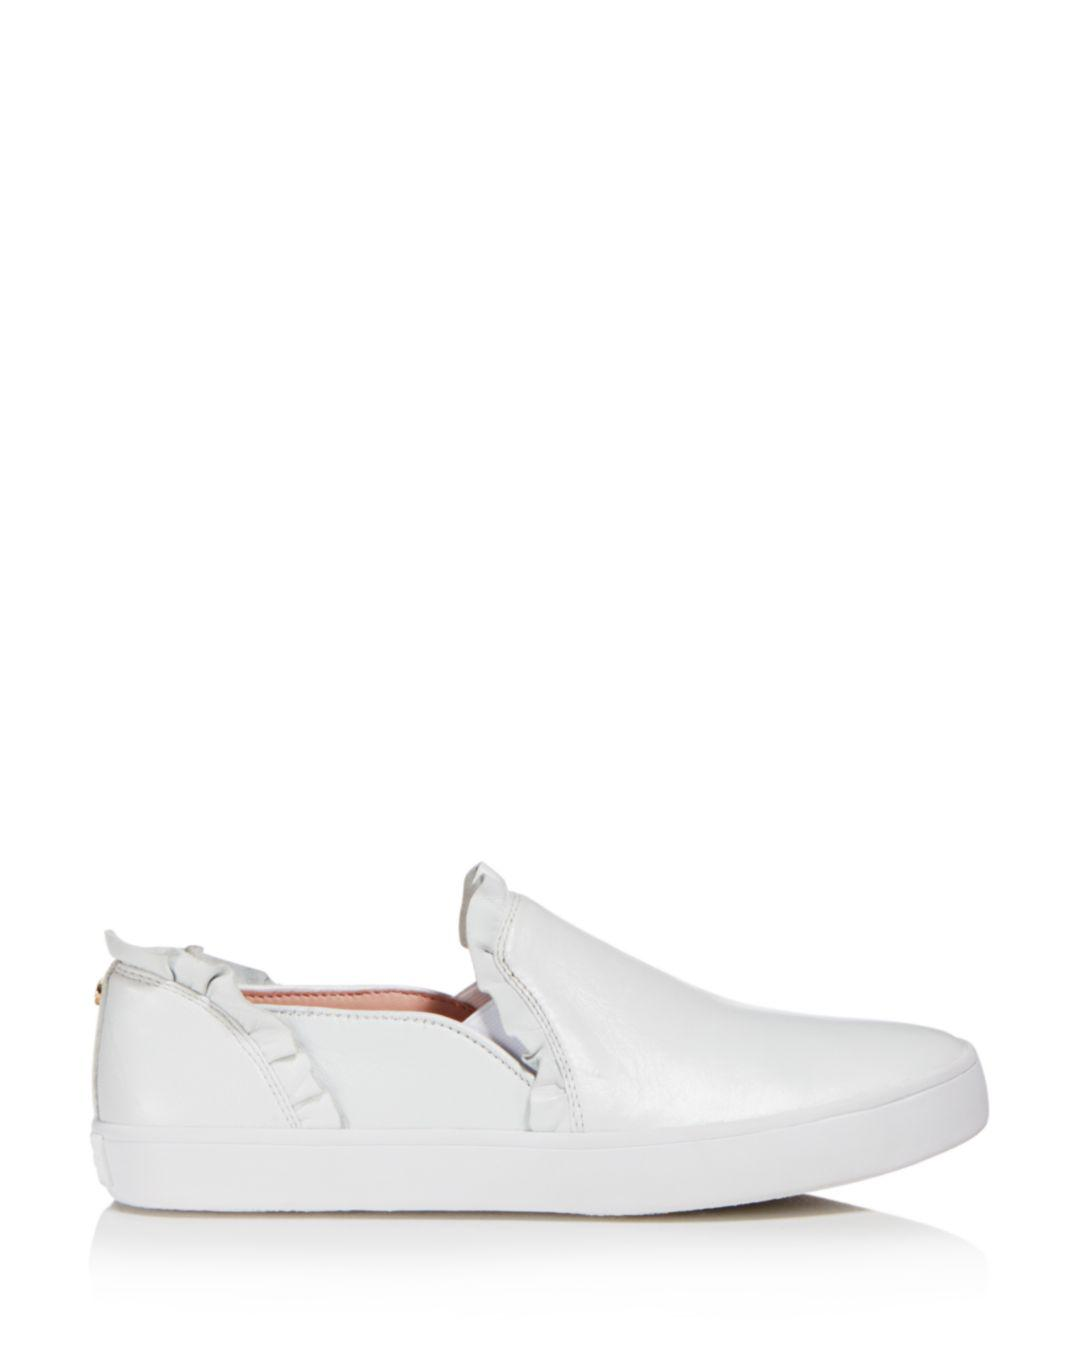 Kate Spade Women s Lilly Ruffle-trim Leather Slip-on Sneakers in White -  Lyst c6e59649da